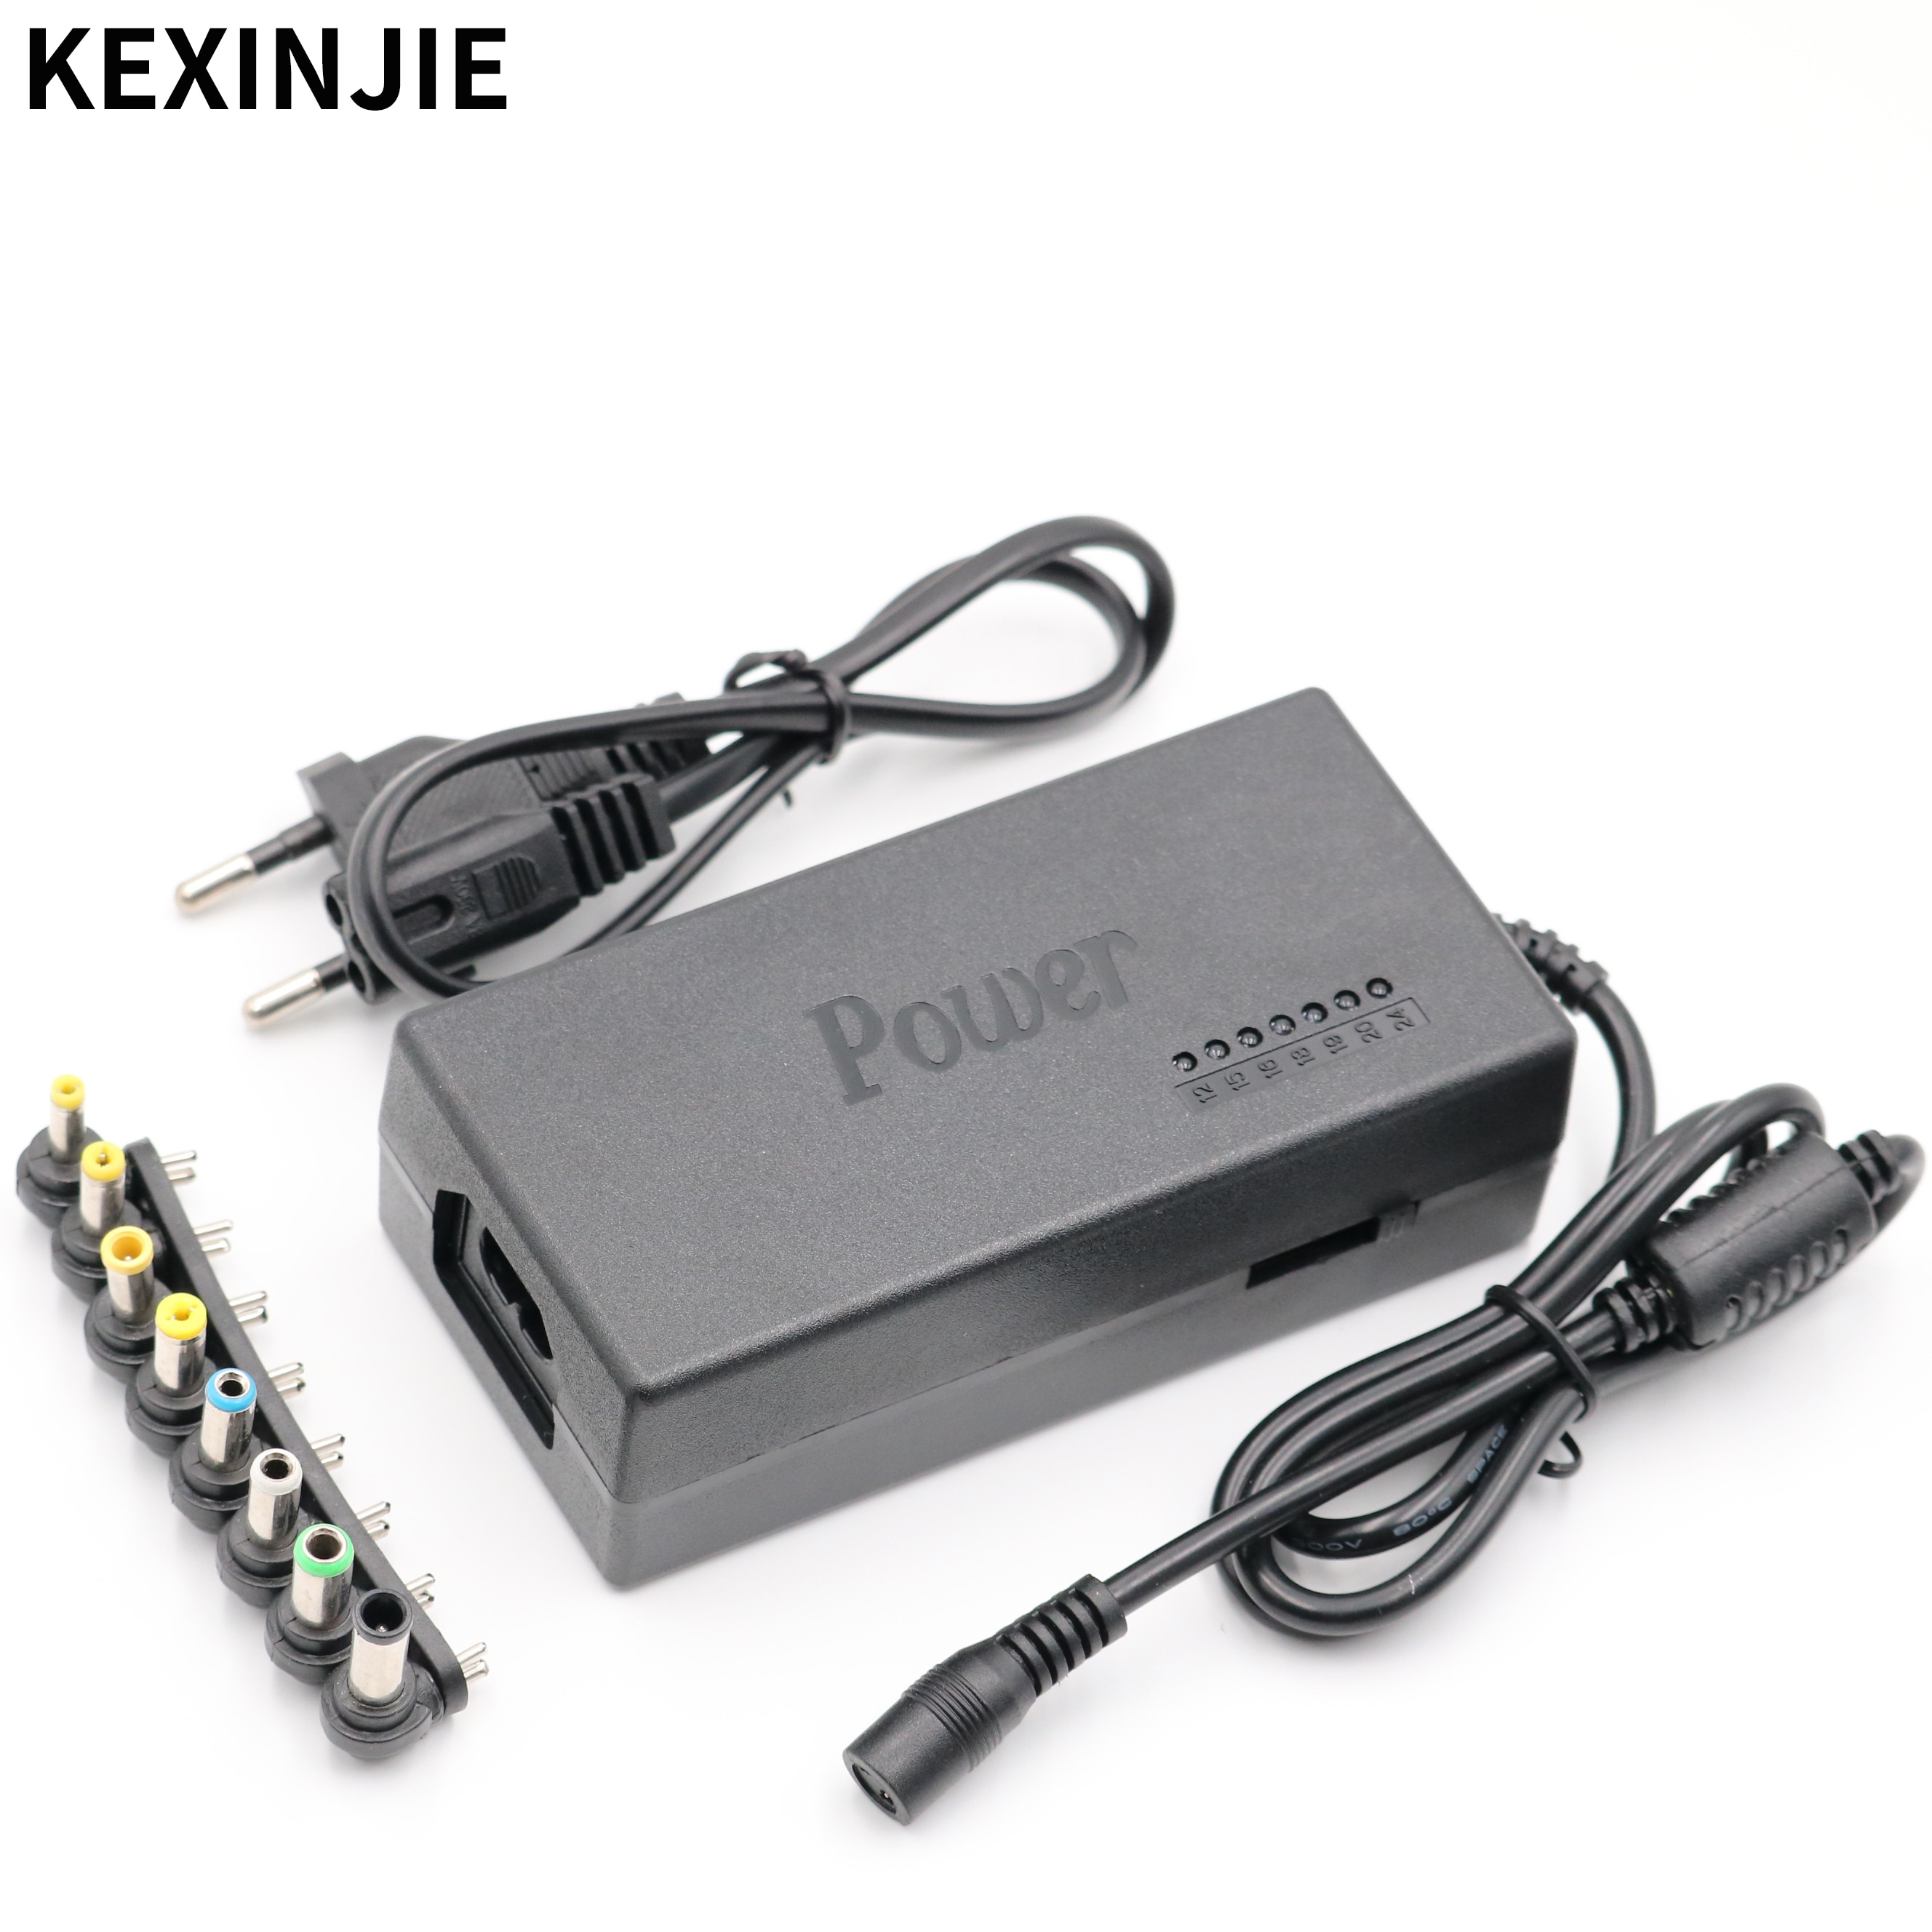 96W Universal Laptop PC Netbook Power Supply Charger 110-220v AC To DC 12V/15V/16V/18V/19V/20V/24V L